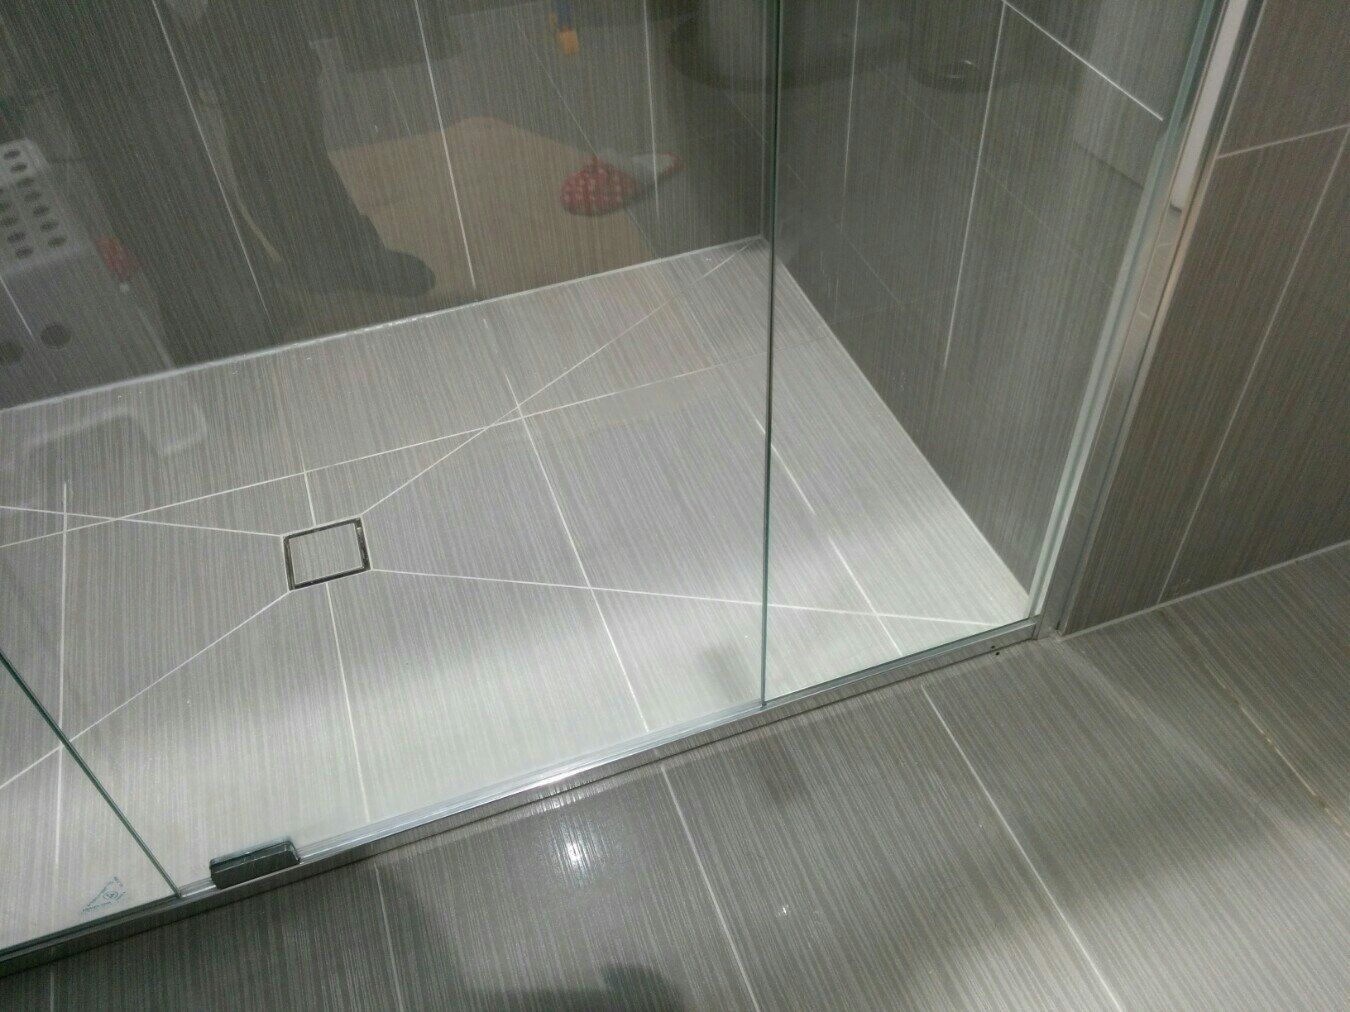 laying large floor tiles arond wastes - Google Search | Bathrooms ...